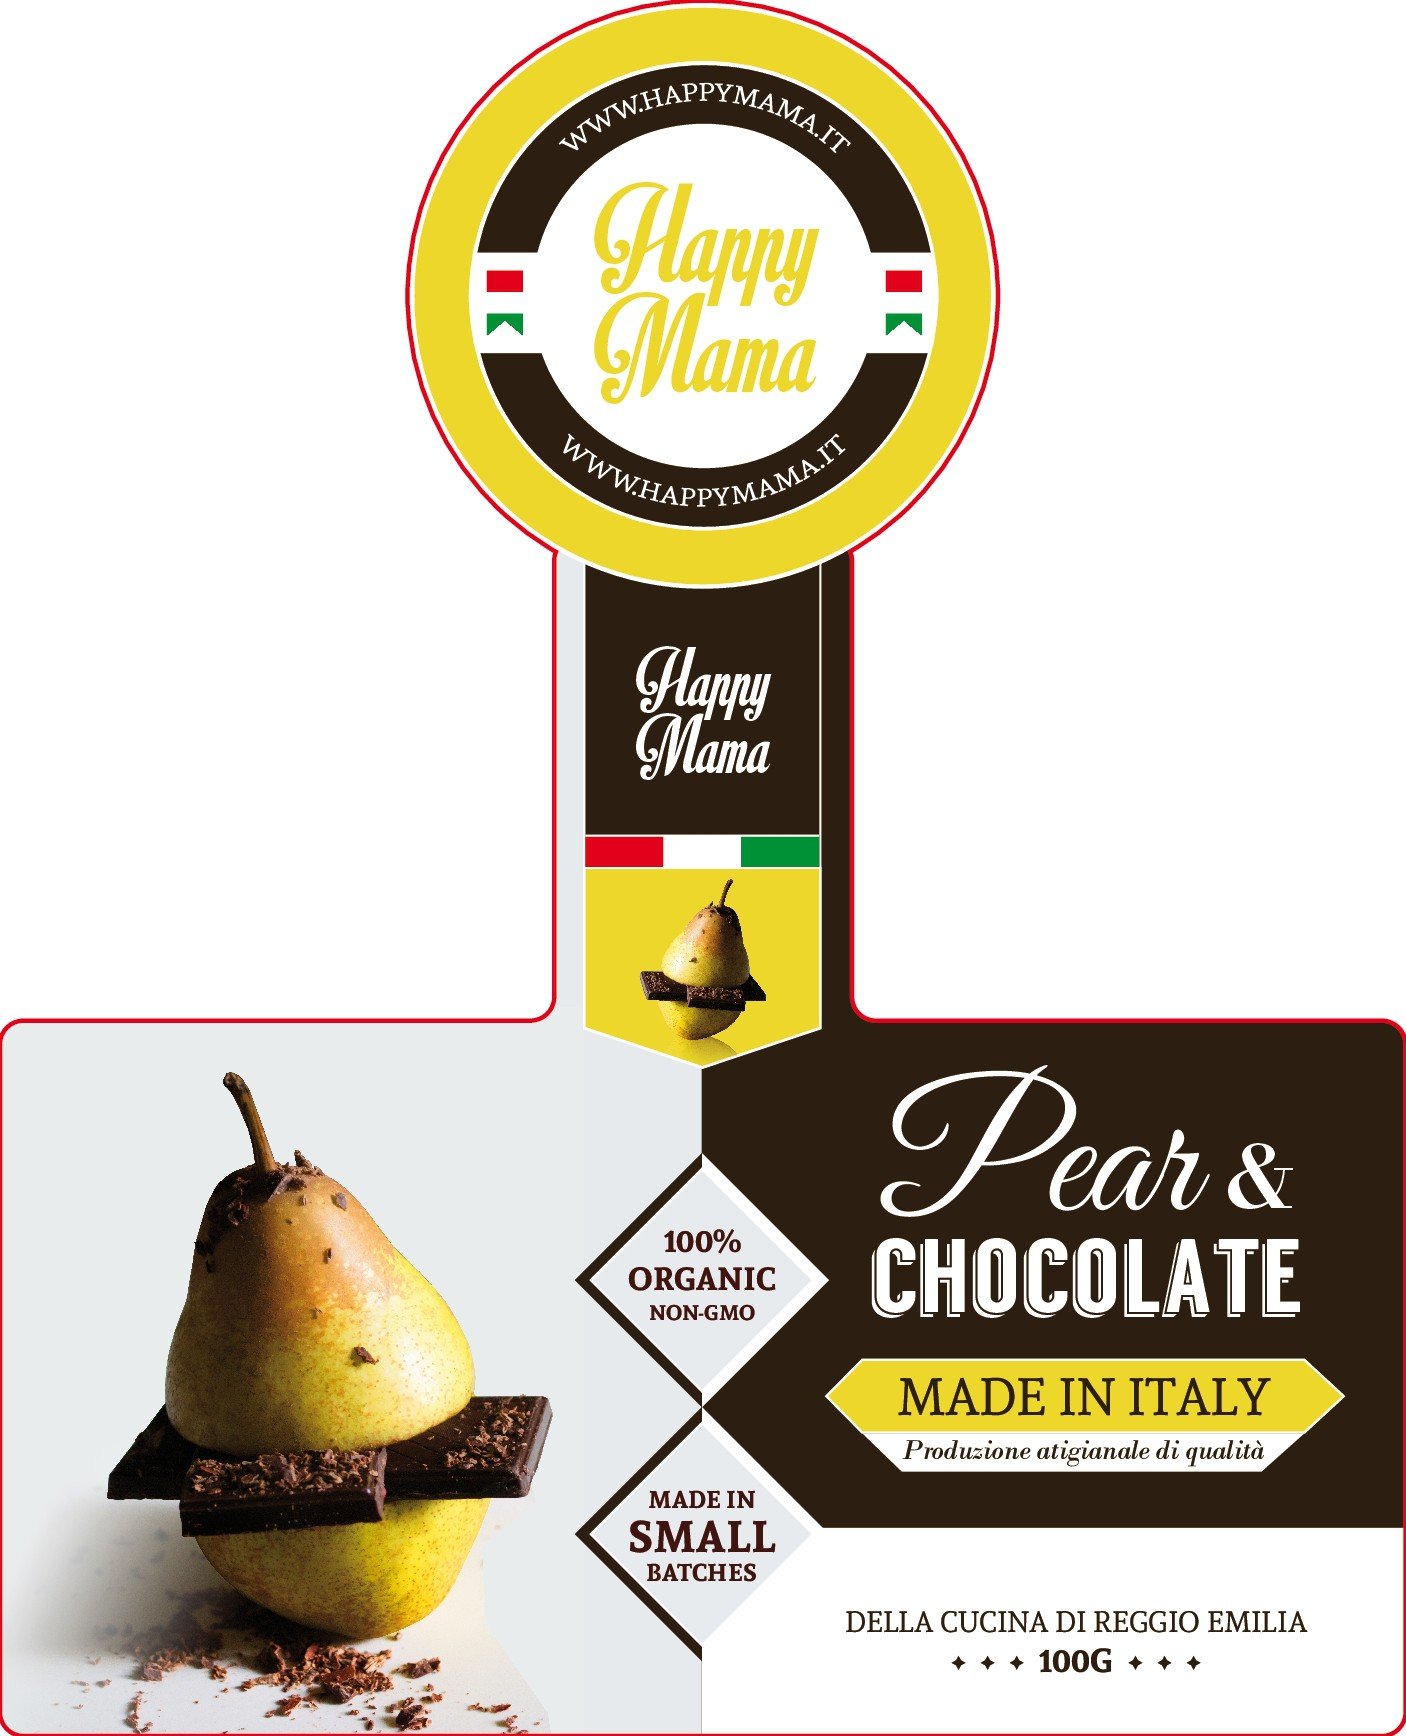 PRODUCT LABEL!!! For the next Nutella-type spread to hit the US market